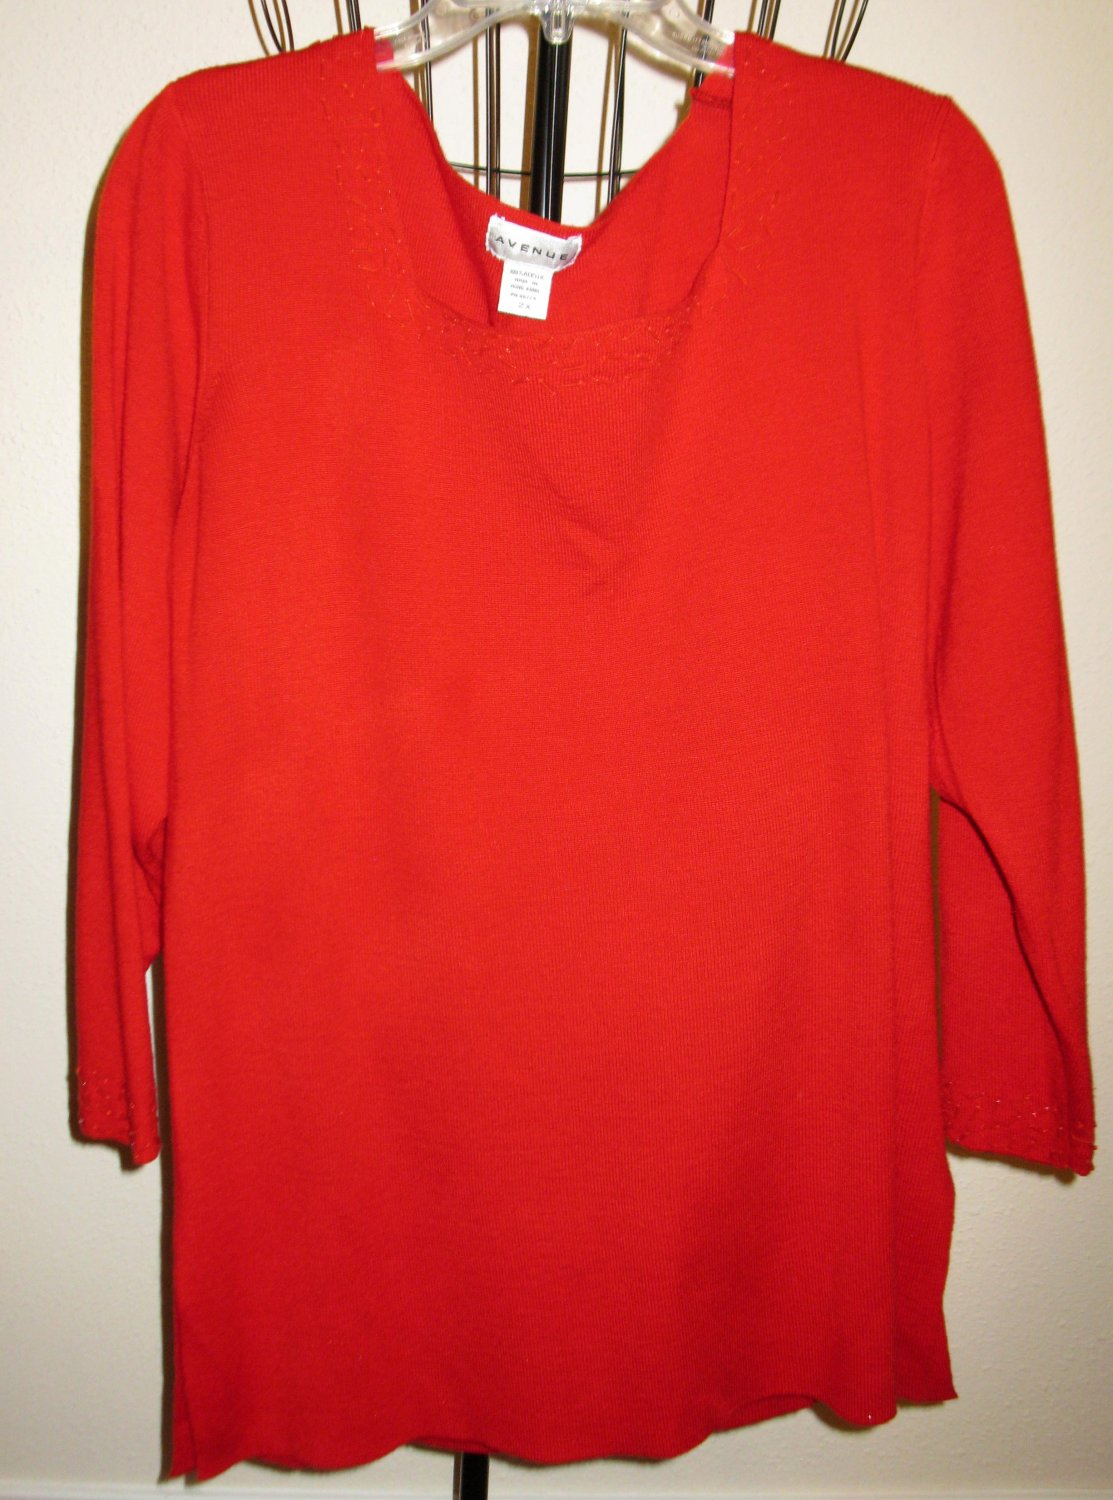 Red Square Neck Beaded Neckline Sweater by Avenue Size 2X Nice! #D381